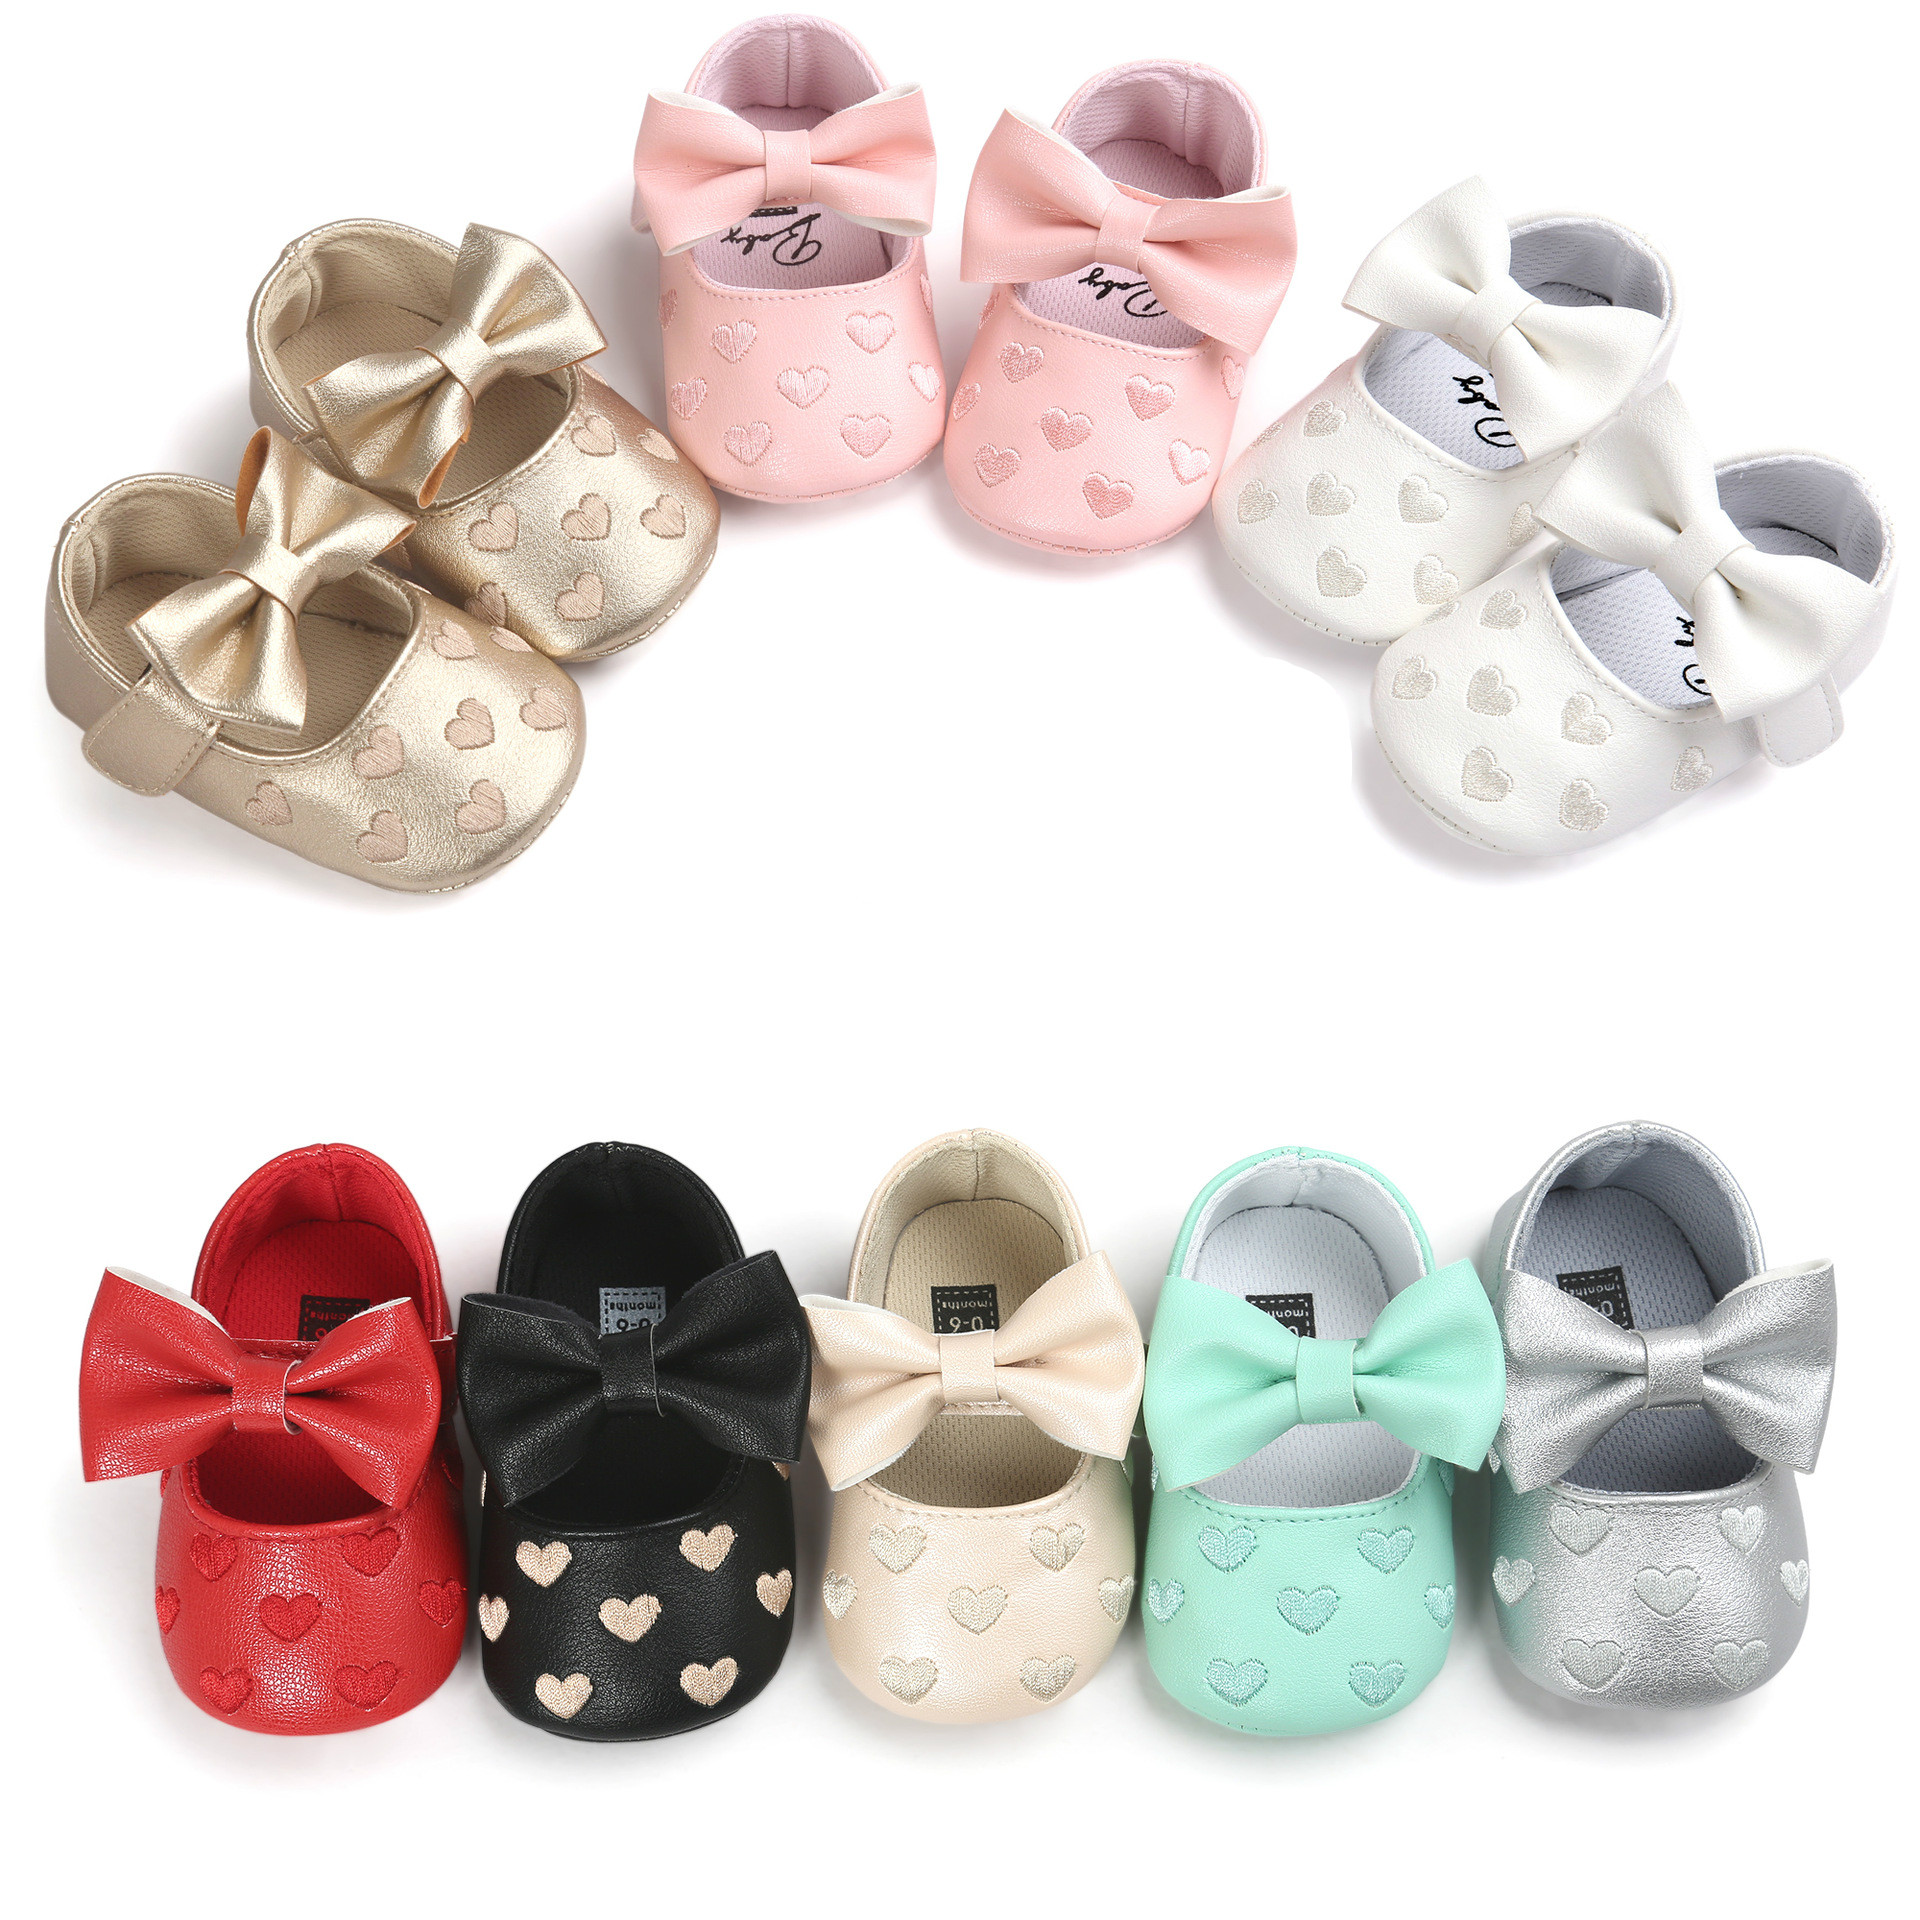 Spring Summer Baby PU Leather Baby Boy Girl Baby Moccasins Moccs Shoes Bow Fringe Soft Soled Non-slip Footwear Crib Shoes 0-18M